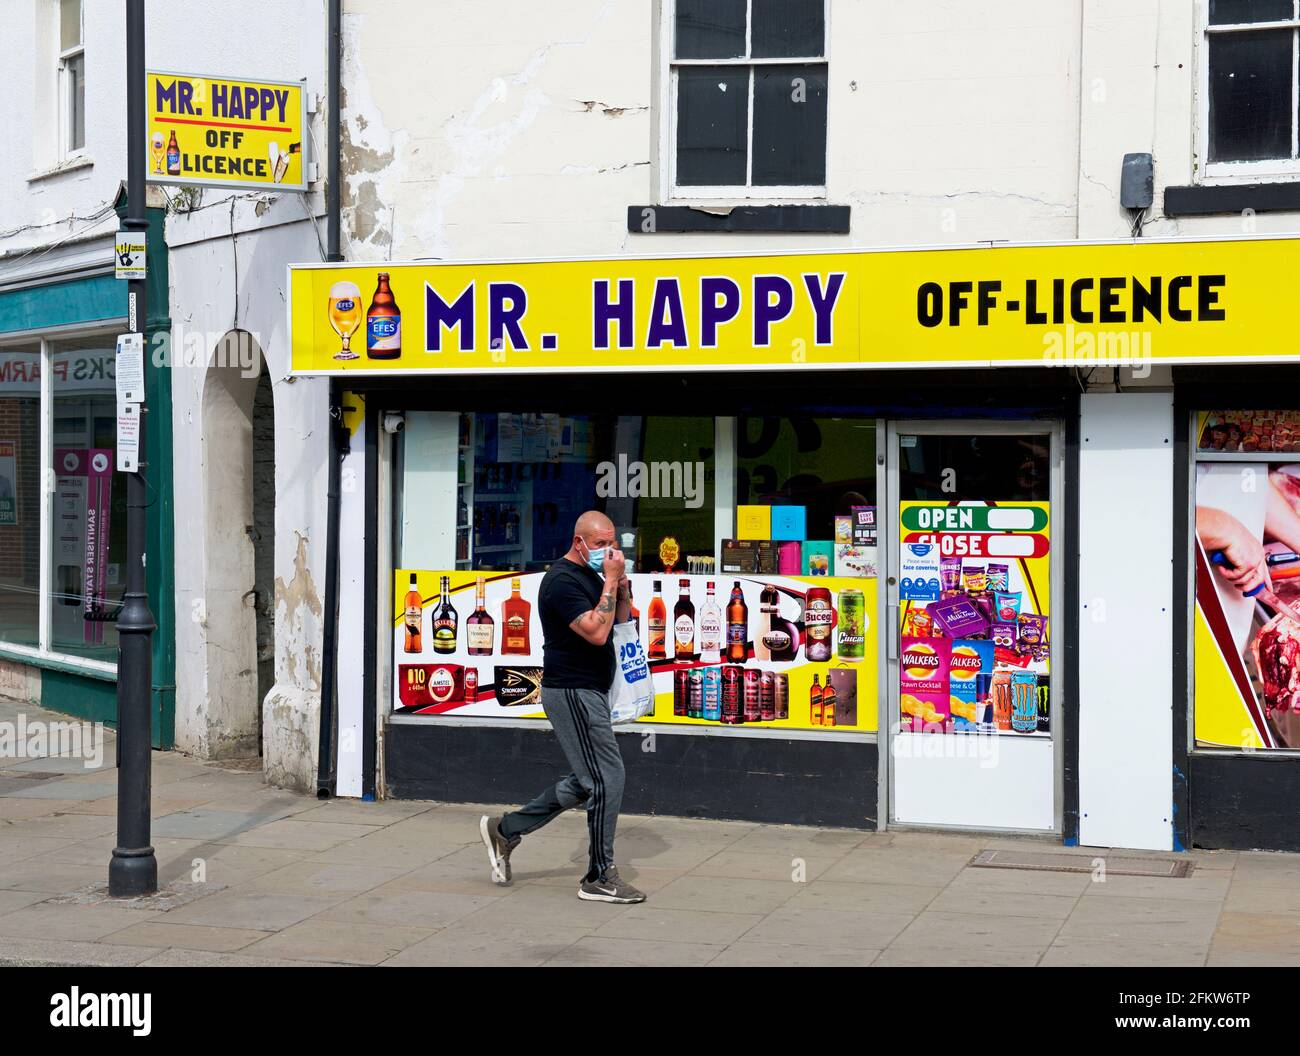 man-walking-past-shop-mr-happy-off-licence-in-thorne-south-yorkshire-england-uk-2FKW6TP.jpg